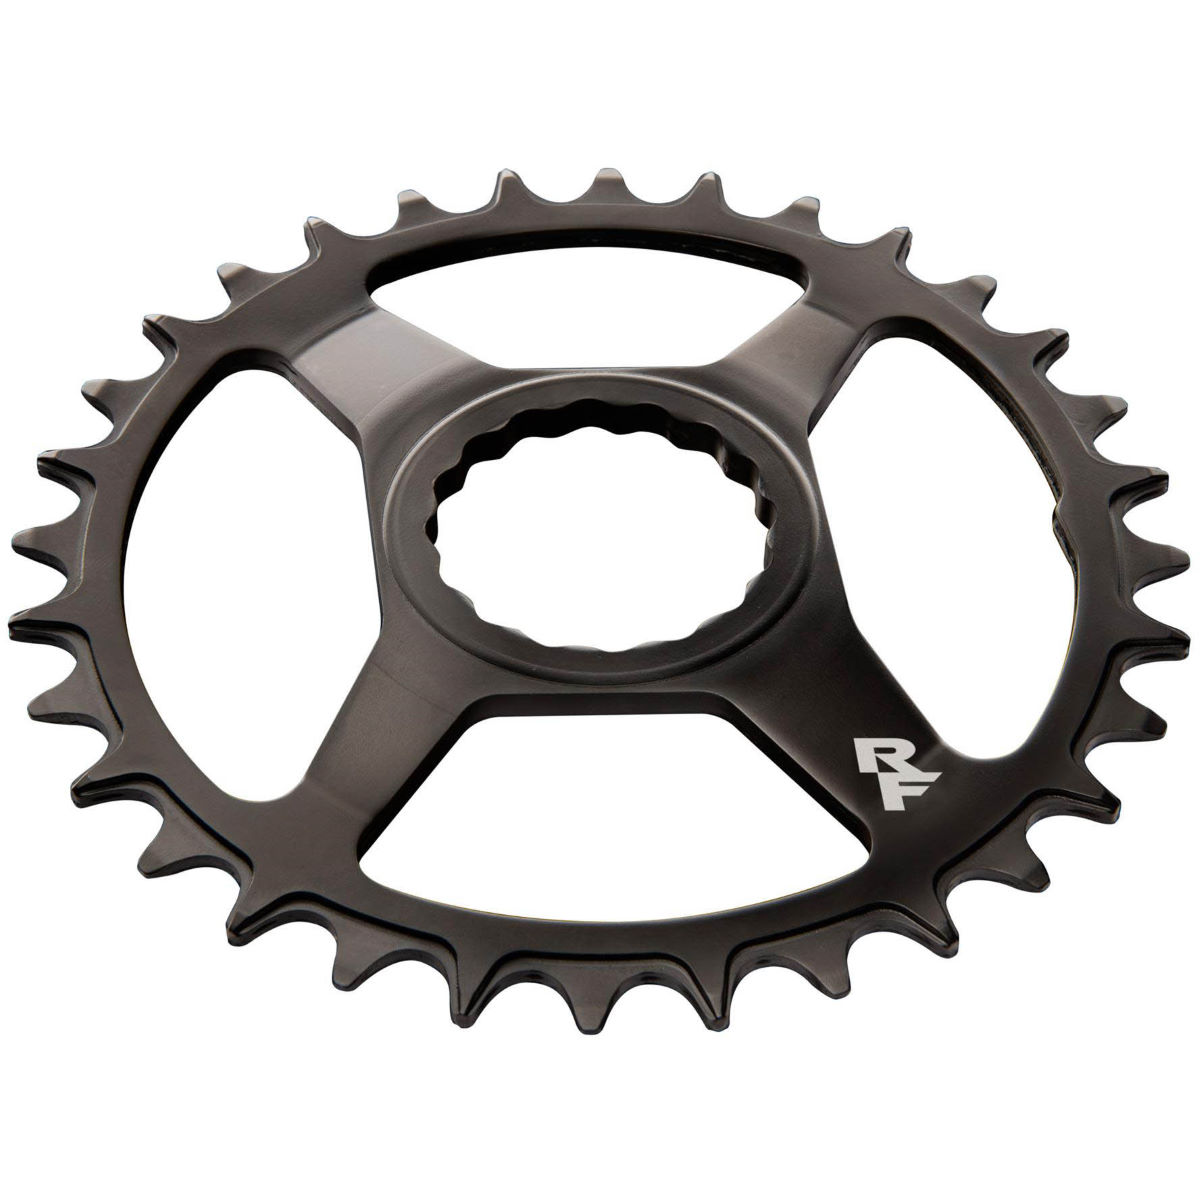 Race Face Race Face Direct Mount Narrow/Wide Single Chainring   Chain Rings